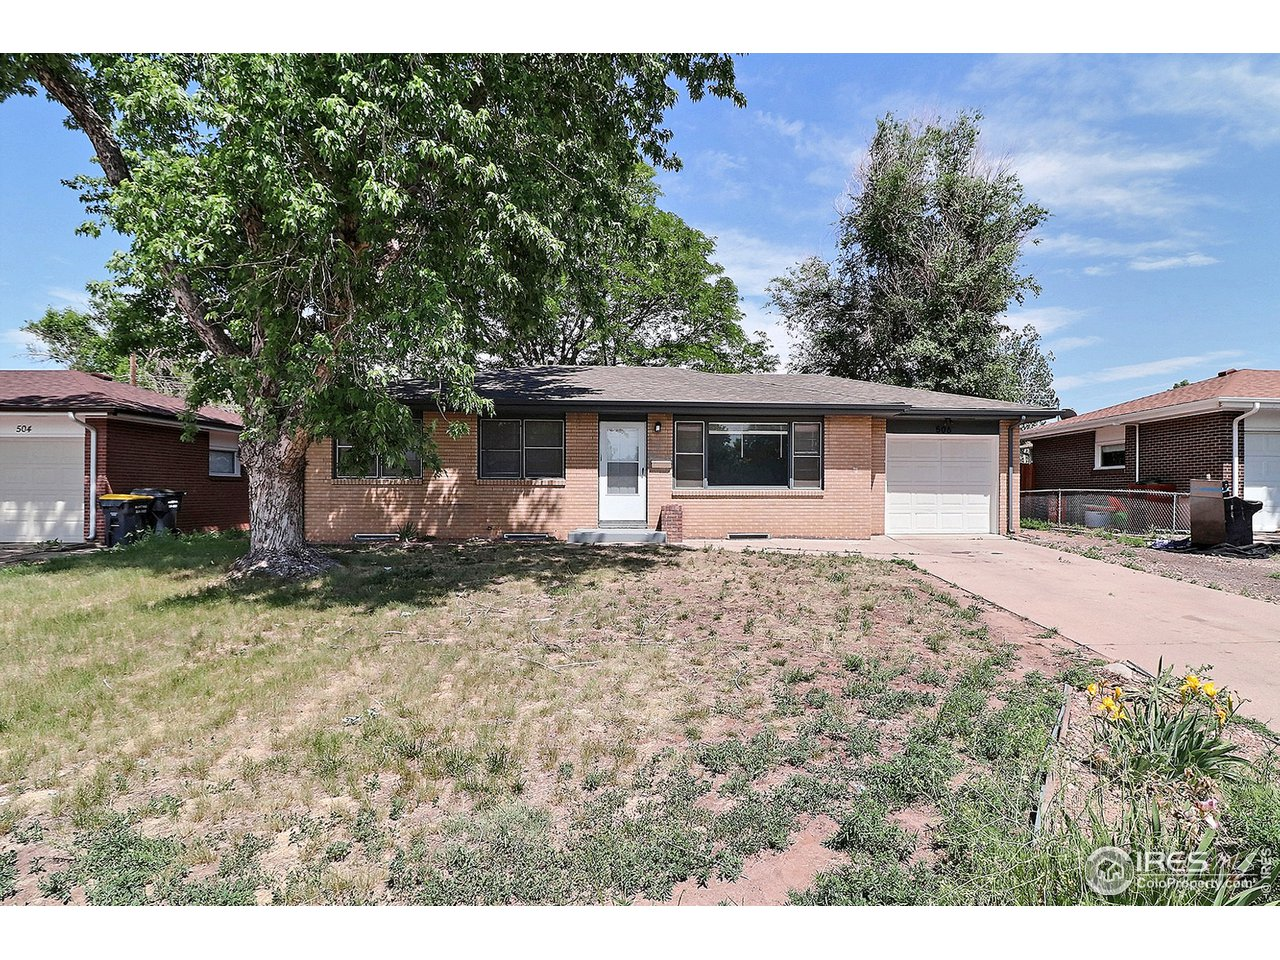 506 28th Ave, Greeley CO 80634